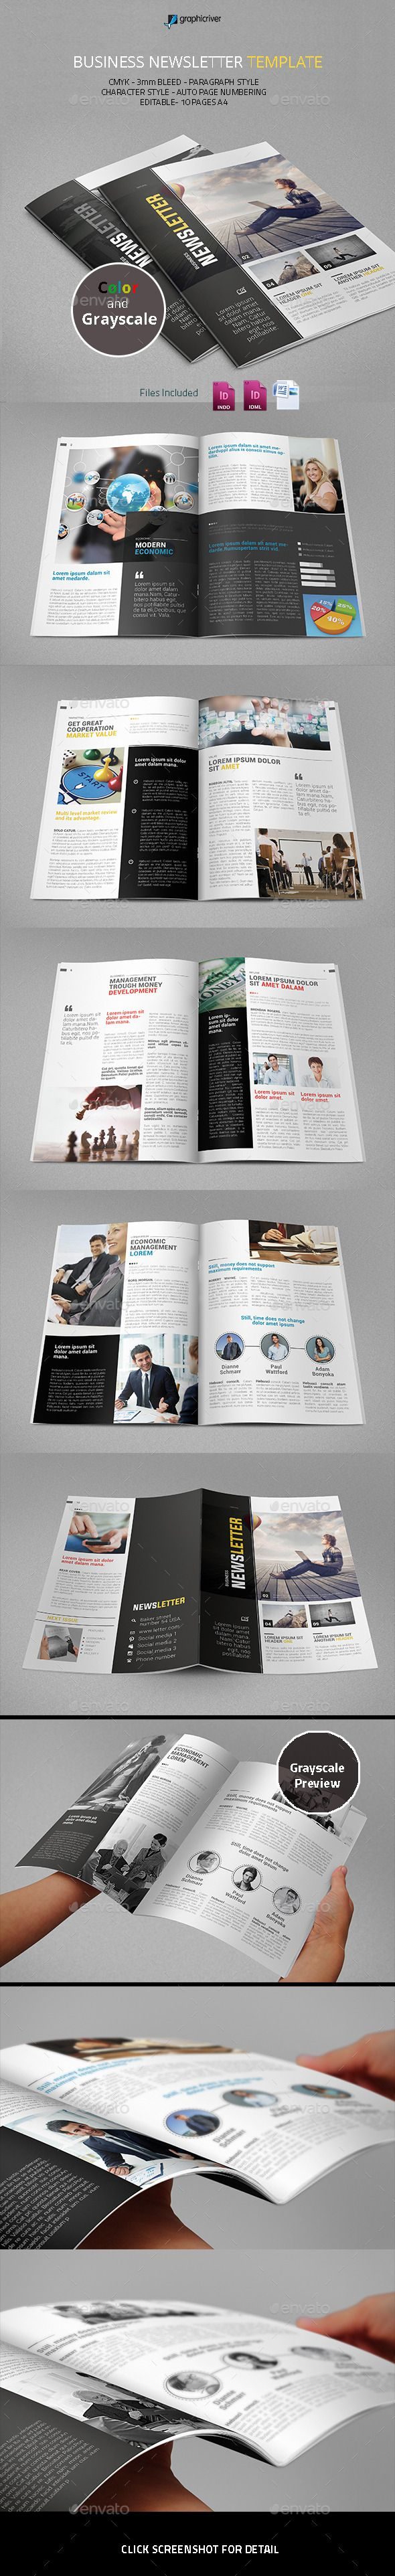 Business Newsletter Template #design Download: http://graphicriver.net/item/business-newsletter-template/11024236?ref=ksioks